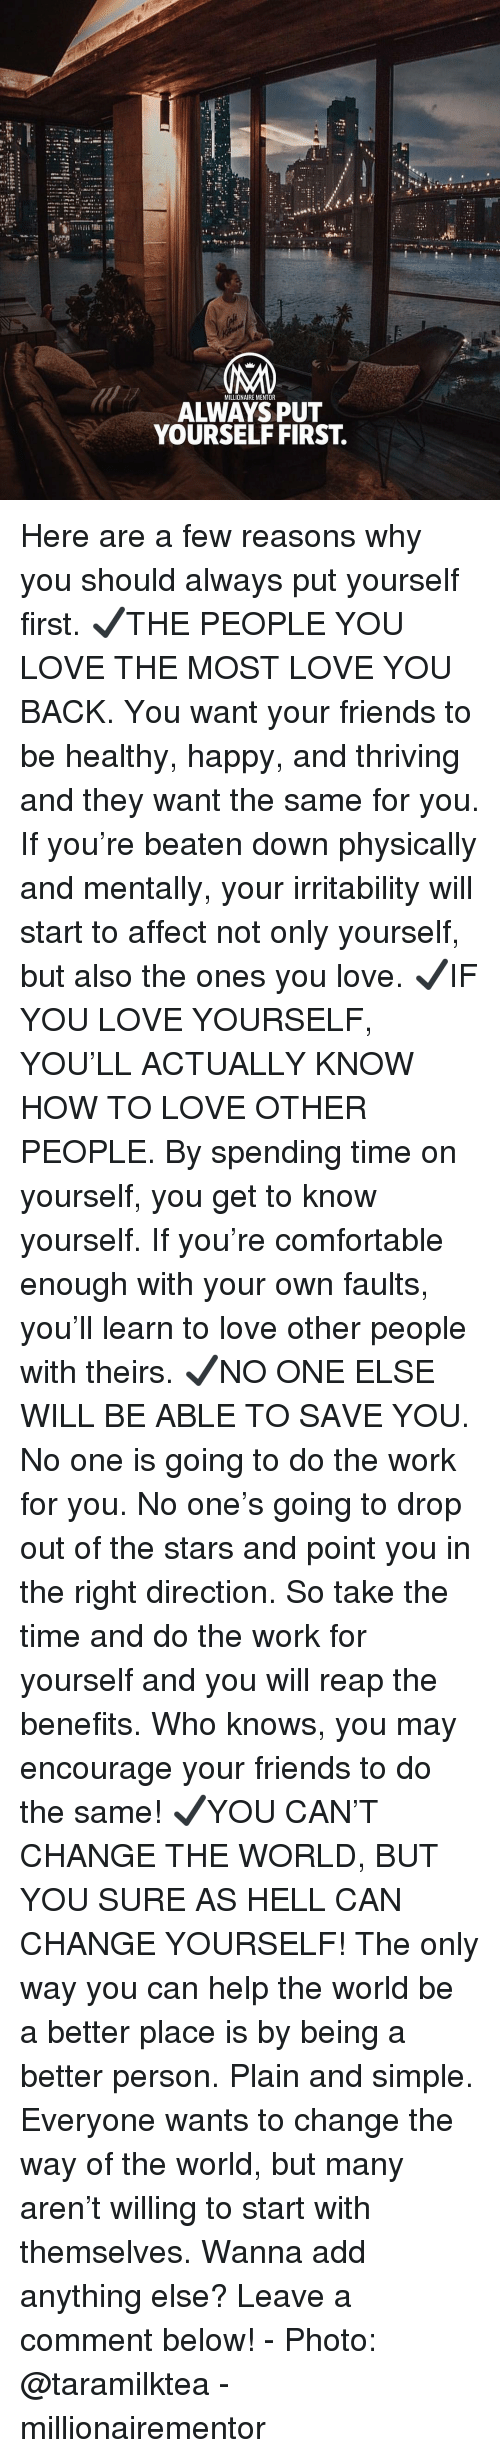 Comfortable, Friends, and Know Yourself: NM  MILLIONAIRE MENTOR  ALWAYS PUT  YOURSELF FIRST. Here are a few reasons why you should always put yourself first. ✔️THE PEOPLE YOU LOVE THE MOST LOVE YOU BACK. You want your friends to be healthy, happy, and thriving and they want the same for you. If you're beaten down physically and mentally, your irritability will start to affect not only yourself, but also the ones you love. ✔️IF YOU LOVE YOURSELF, YOU'LL ACTUALLY KNOW HOW TO LOVE OTHER PEOPLE. By spending time on yourself, you get to know yourself. If you're comfortable enough with your own faults, you'll learn to love other people with theirs. ✔️NO ONE ELSE WILL BE ABLE TO SAVE YOU. No one is going to do the work for you. No one's going to drop out of the stars and point you in the right direction. So take the time and do the work for yourself and you will reap the benefits. Who knows, you may encourage your friends to do the same! ✔️YOU CAN'T CHANGE THE WORLD, BUT YOU SURE AS HELL CAN CHANGE YOURSELF! The only way you can help the world be a better place is by being a better person. Plain and simple. Everyone wants to change the way of the world, but many aren't willing to start with themselves. Wanna add anything else? Leave a comment below! - Photo: @taramilktea - millionairementor